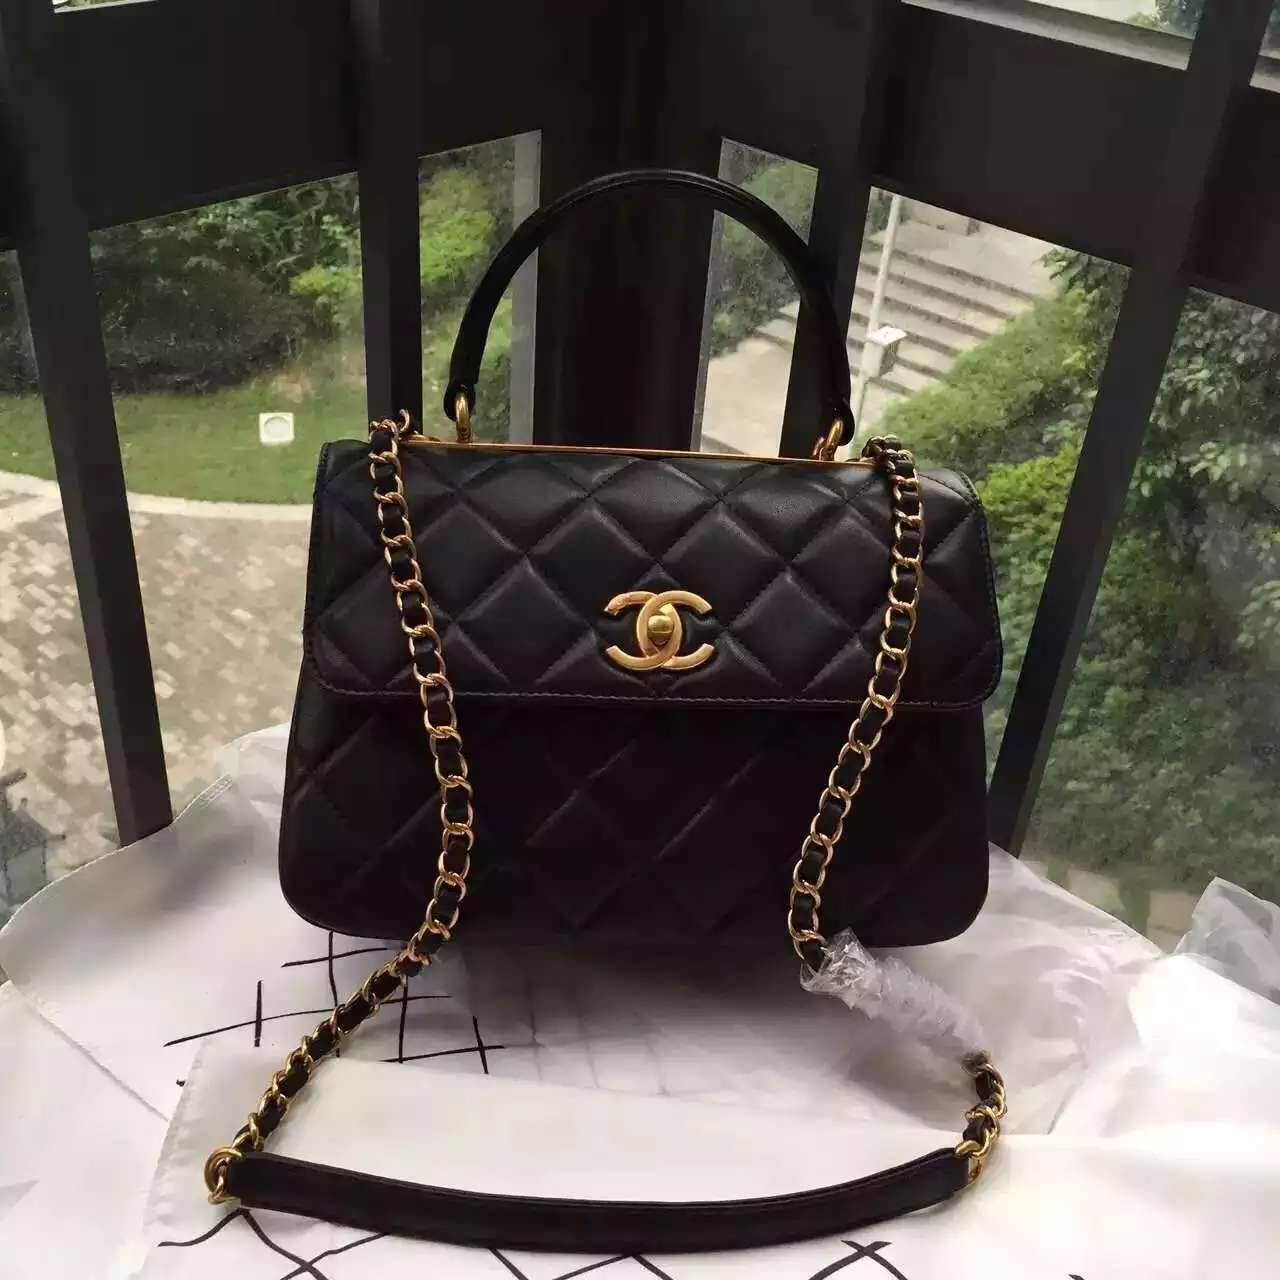 chanel Bag, ID : 42225(FORSALE:a@yybags.com), chanel bag shopping, chanel leather laptop briefcase, buy chanel online us, chanel handbag stores, chanel handbag designers, chanel 2016 backpacks, mens chanel bag, the brand chanel, chanel fabric totes, chanel girls backpacks, chanel authentic handbags, chanel satchel bag, chanel leather wallet womens #chanelBag #chanel #chanel #backpacking #backpacks